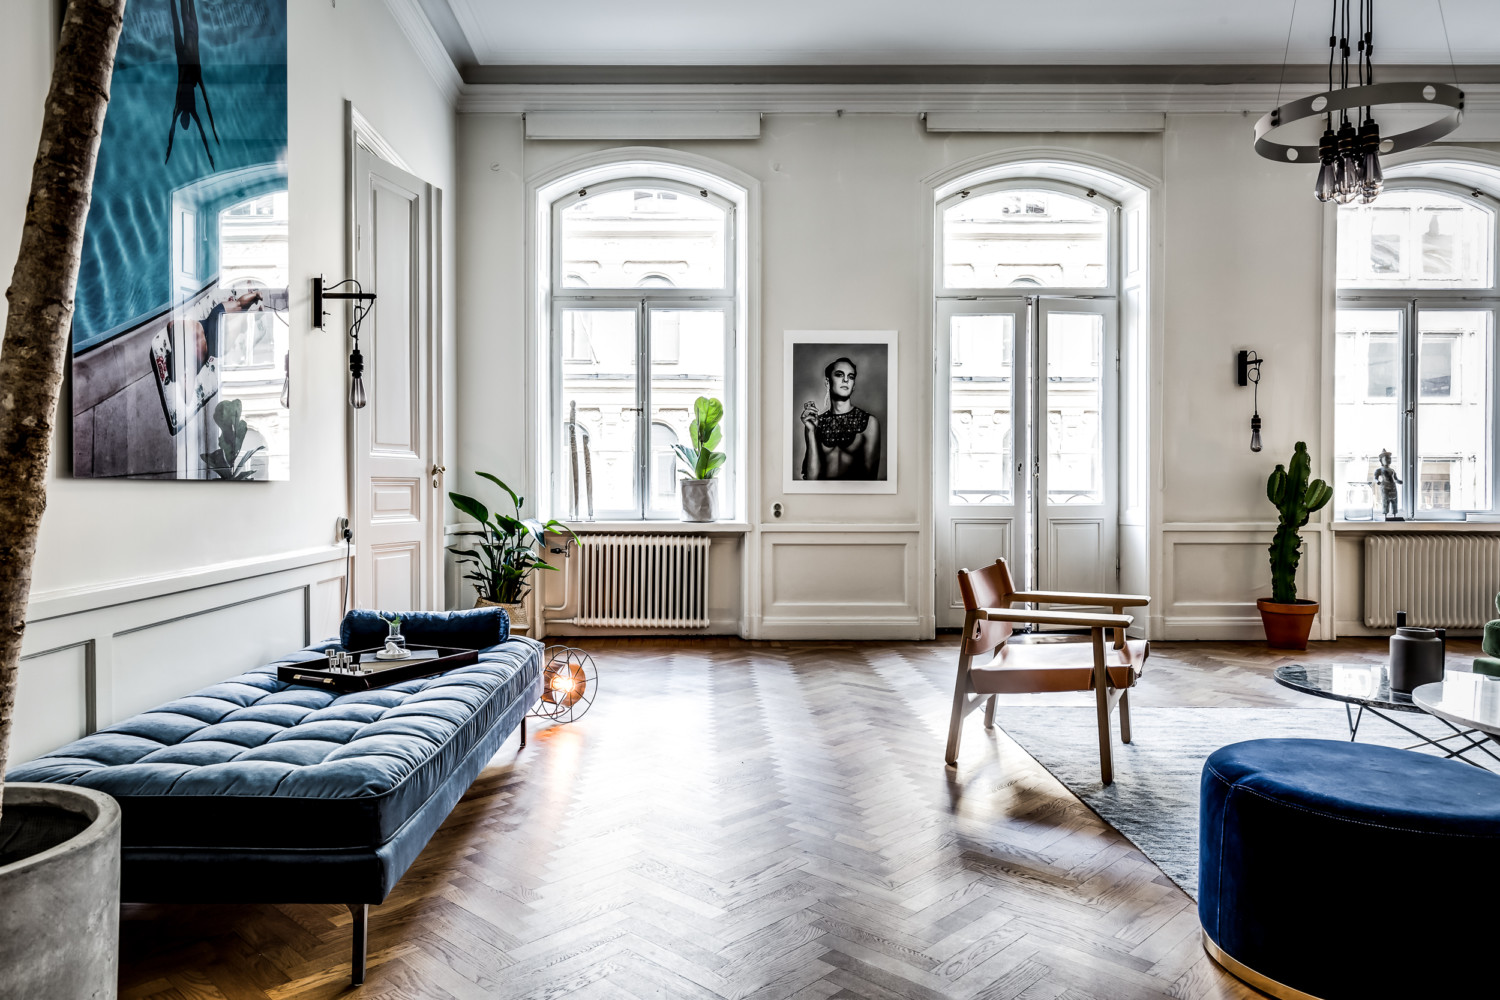 large scandinavian apartment, bohemian style living, eclectic apartment design, mid century furniture, double doors, daybed, interior design